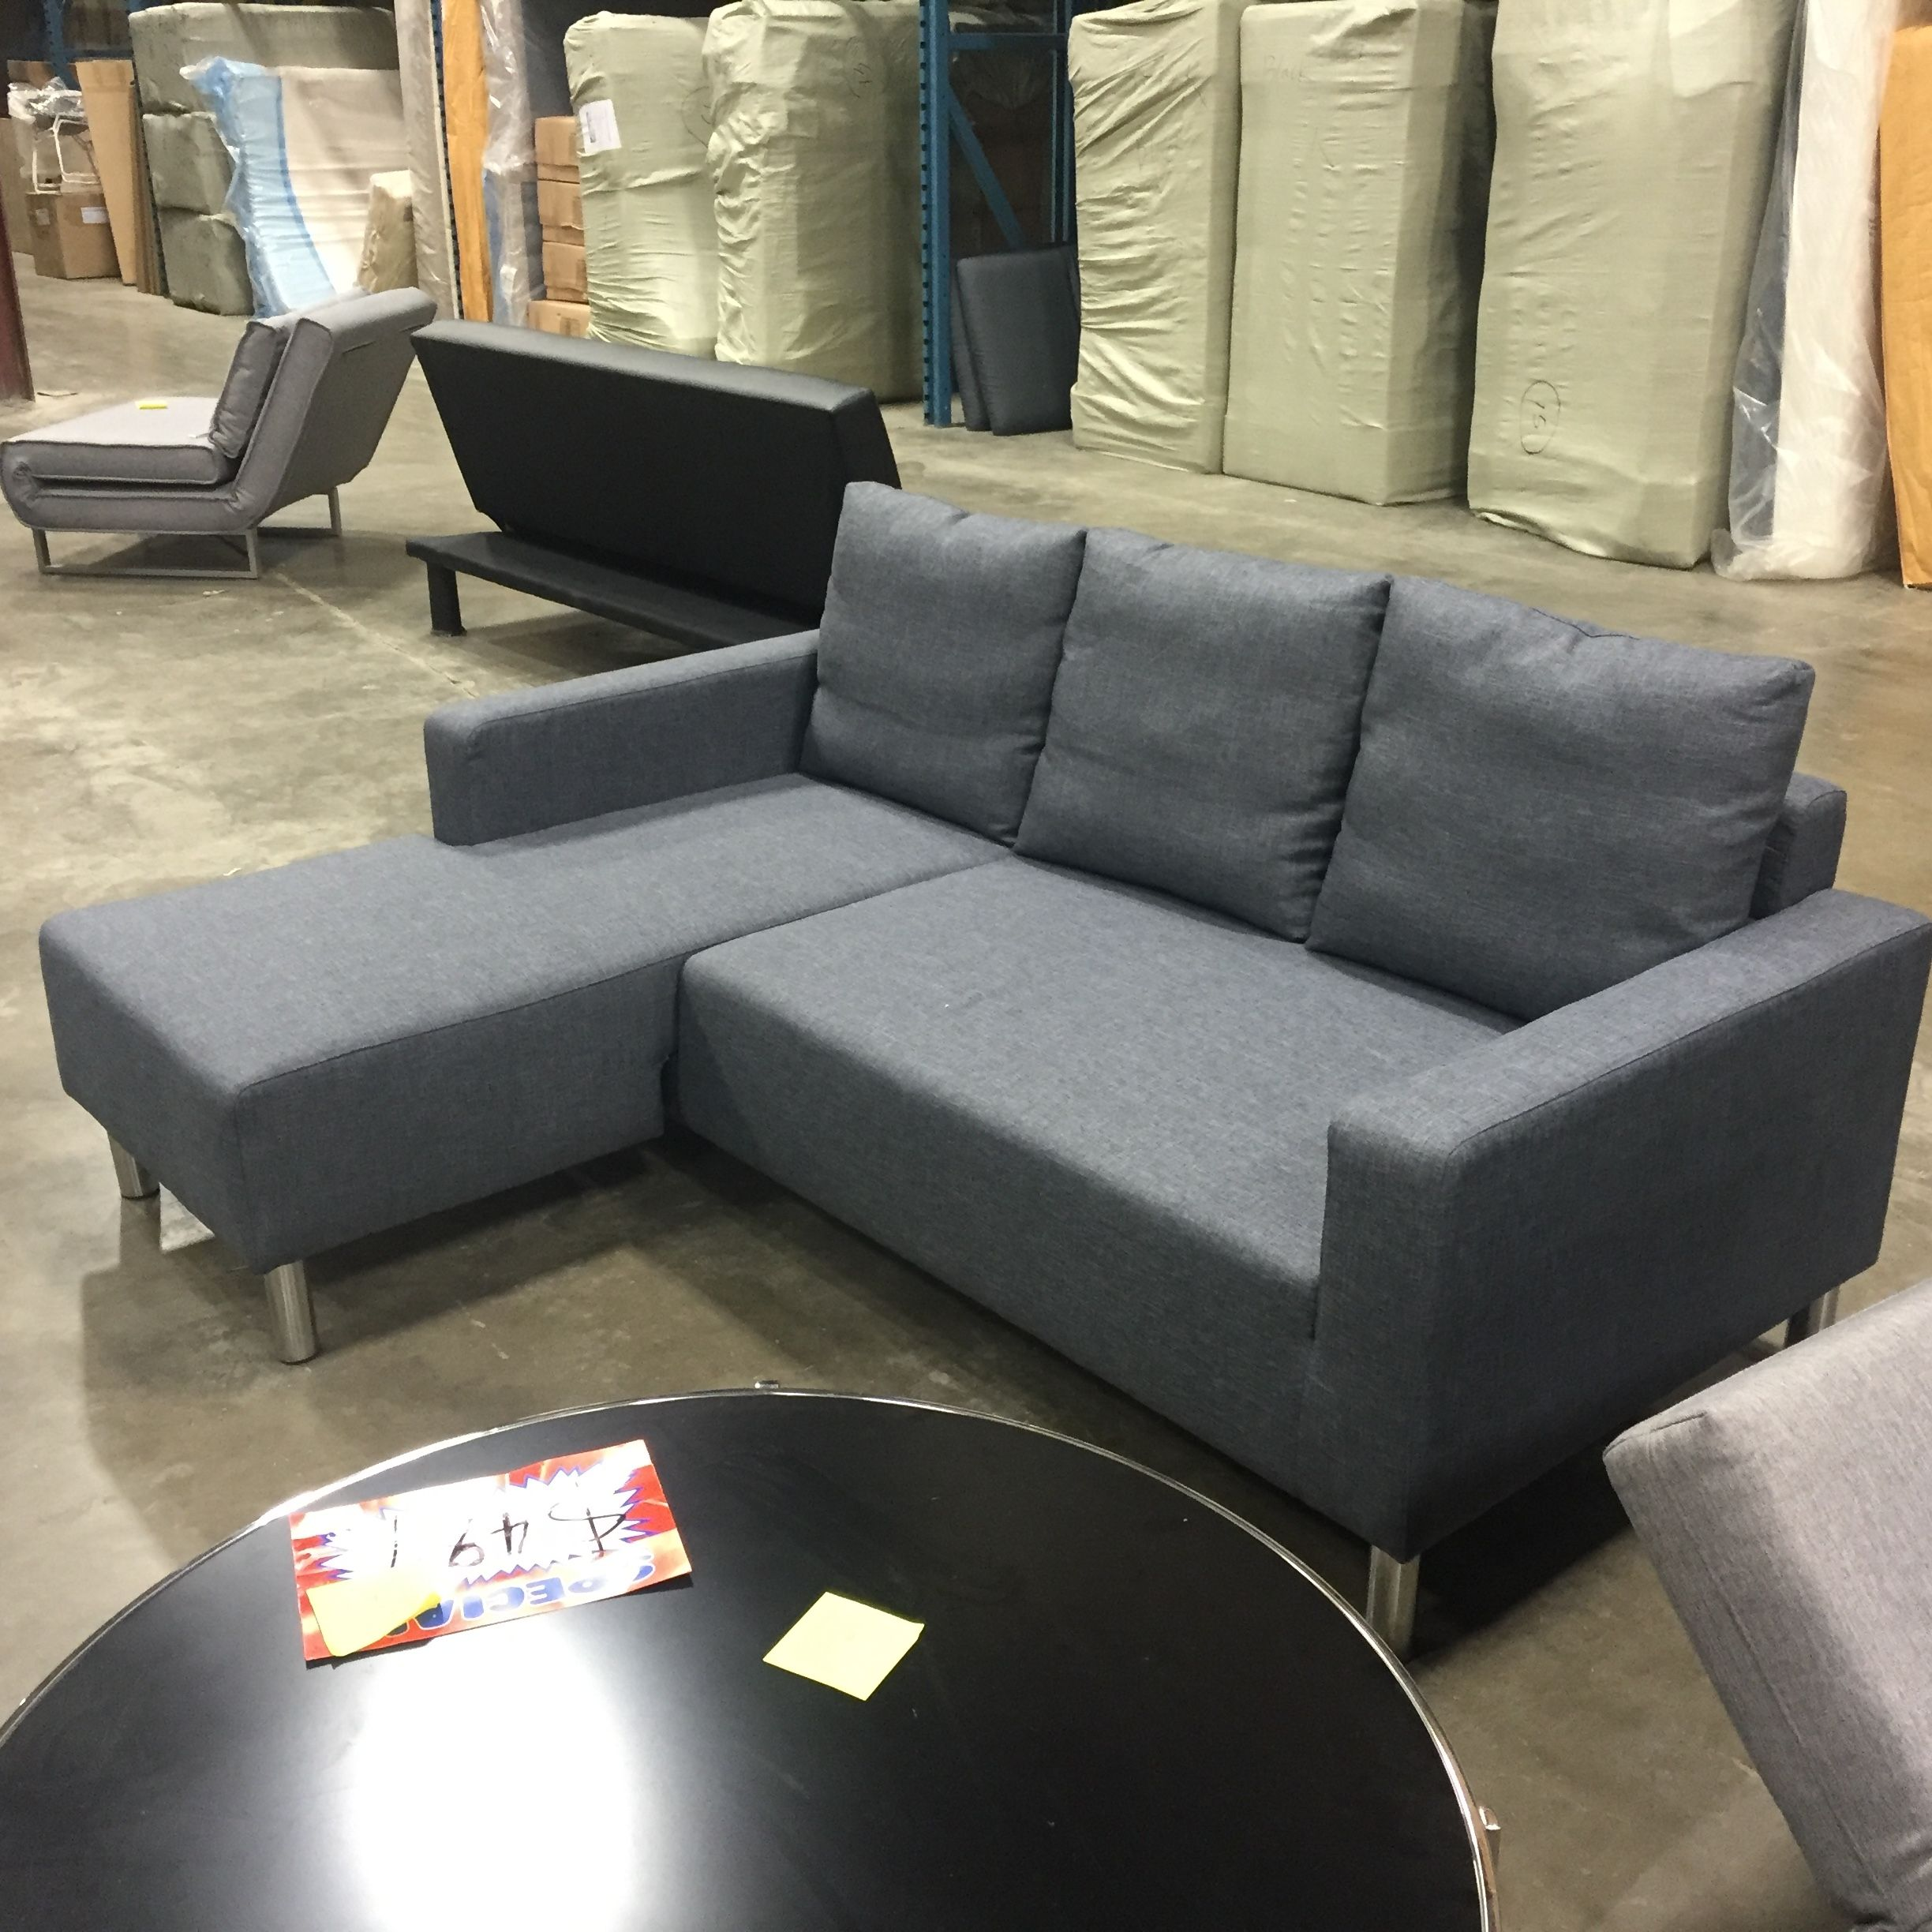 Sectional Sofa Condo Size | Sectional sofa, Sofa, Condo ...